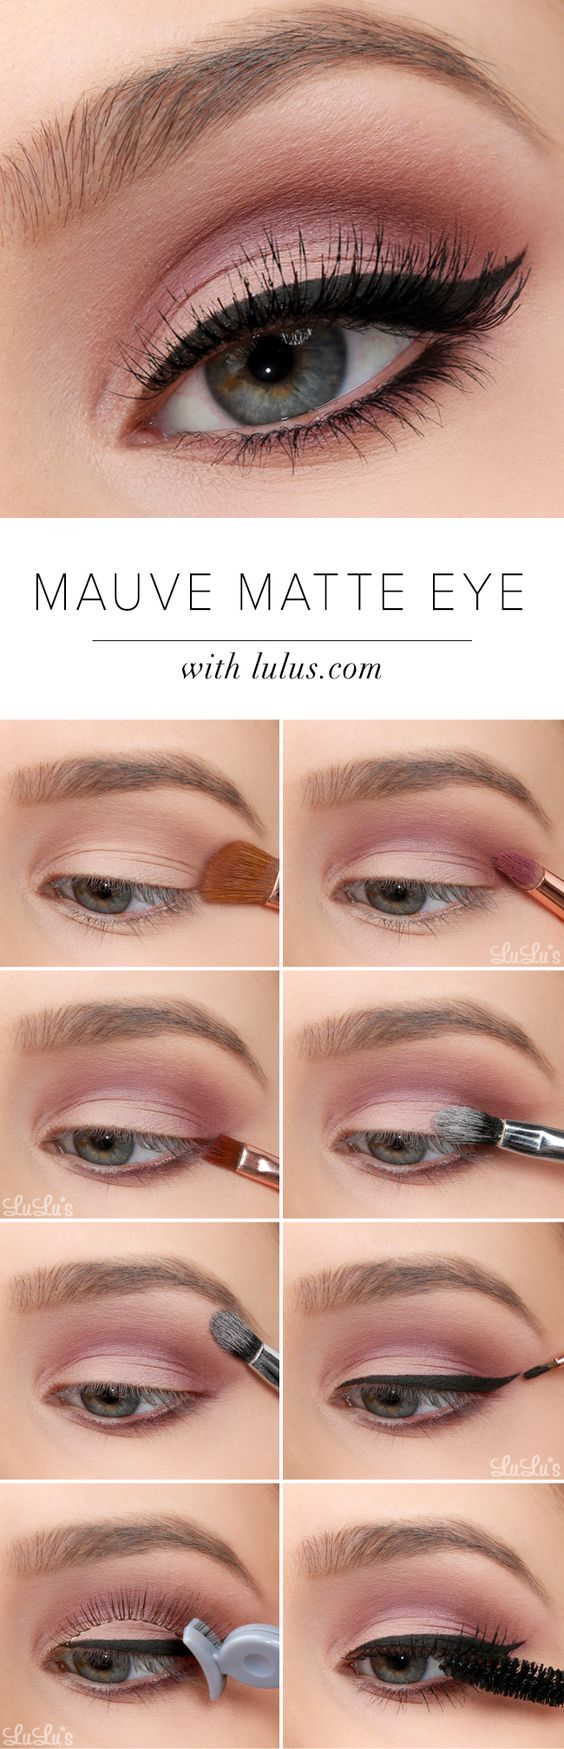 A step-by-step guide to natural' make-up A step-by-step guide to natural' make-up new photo